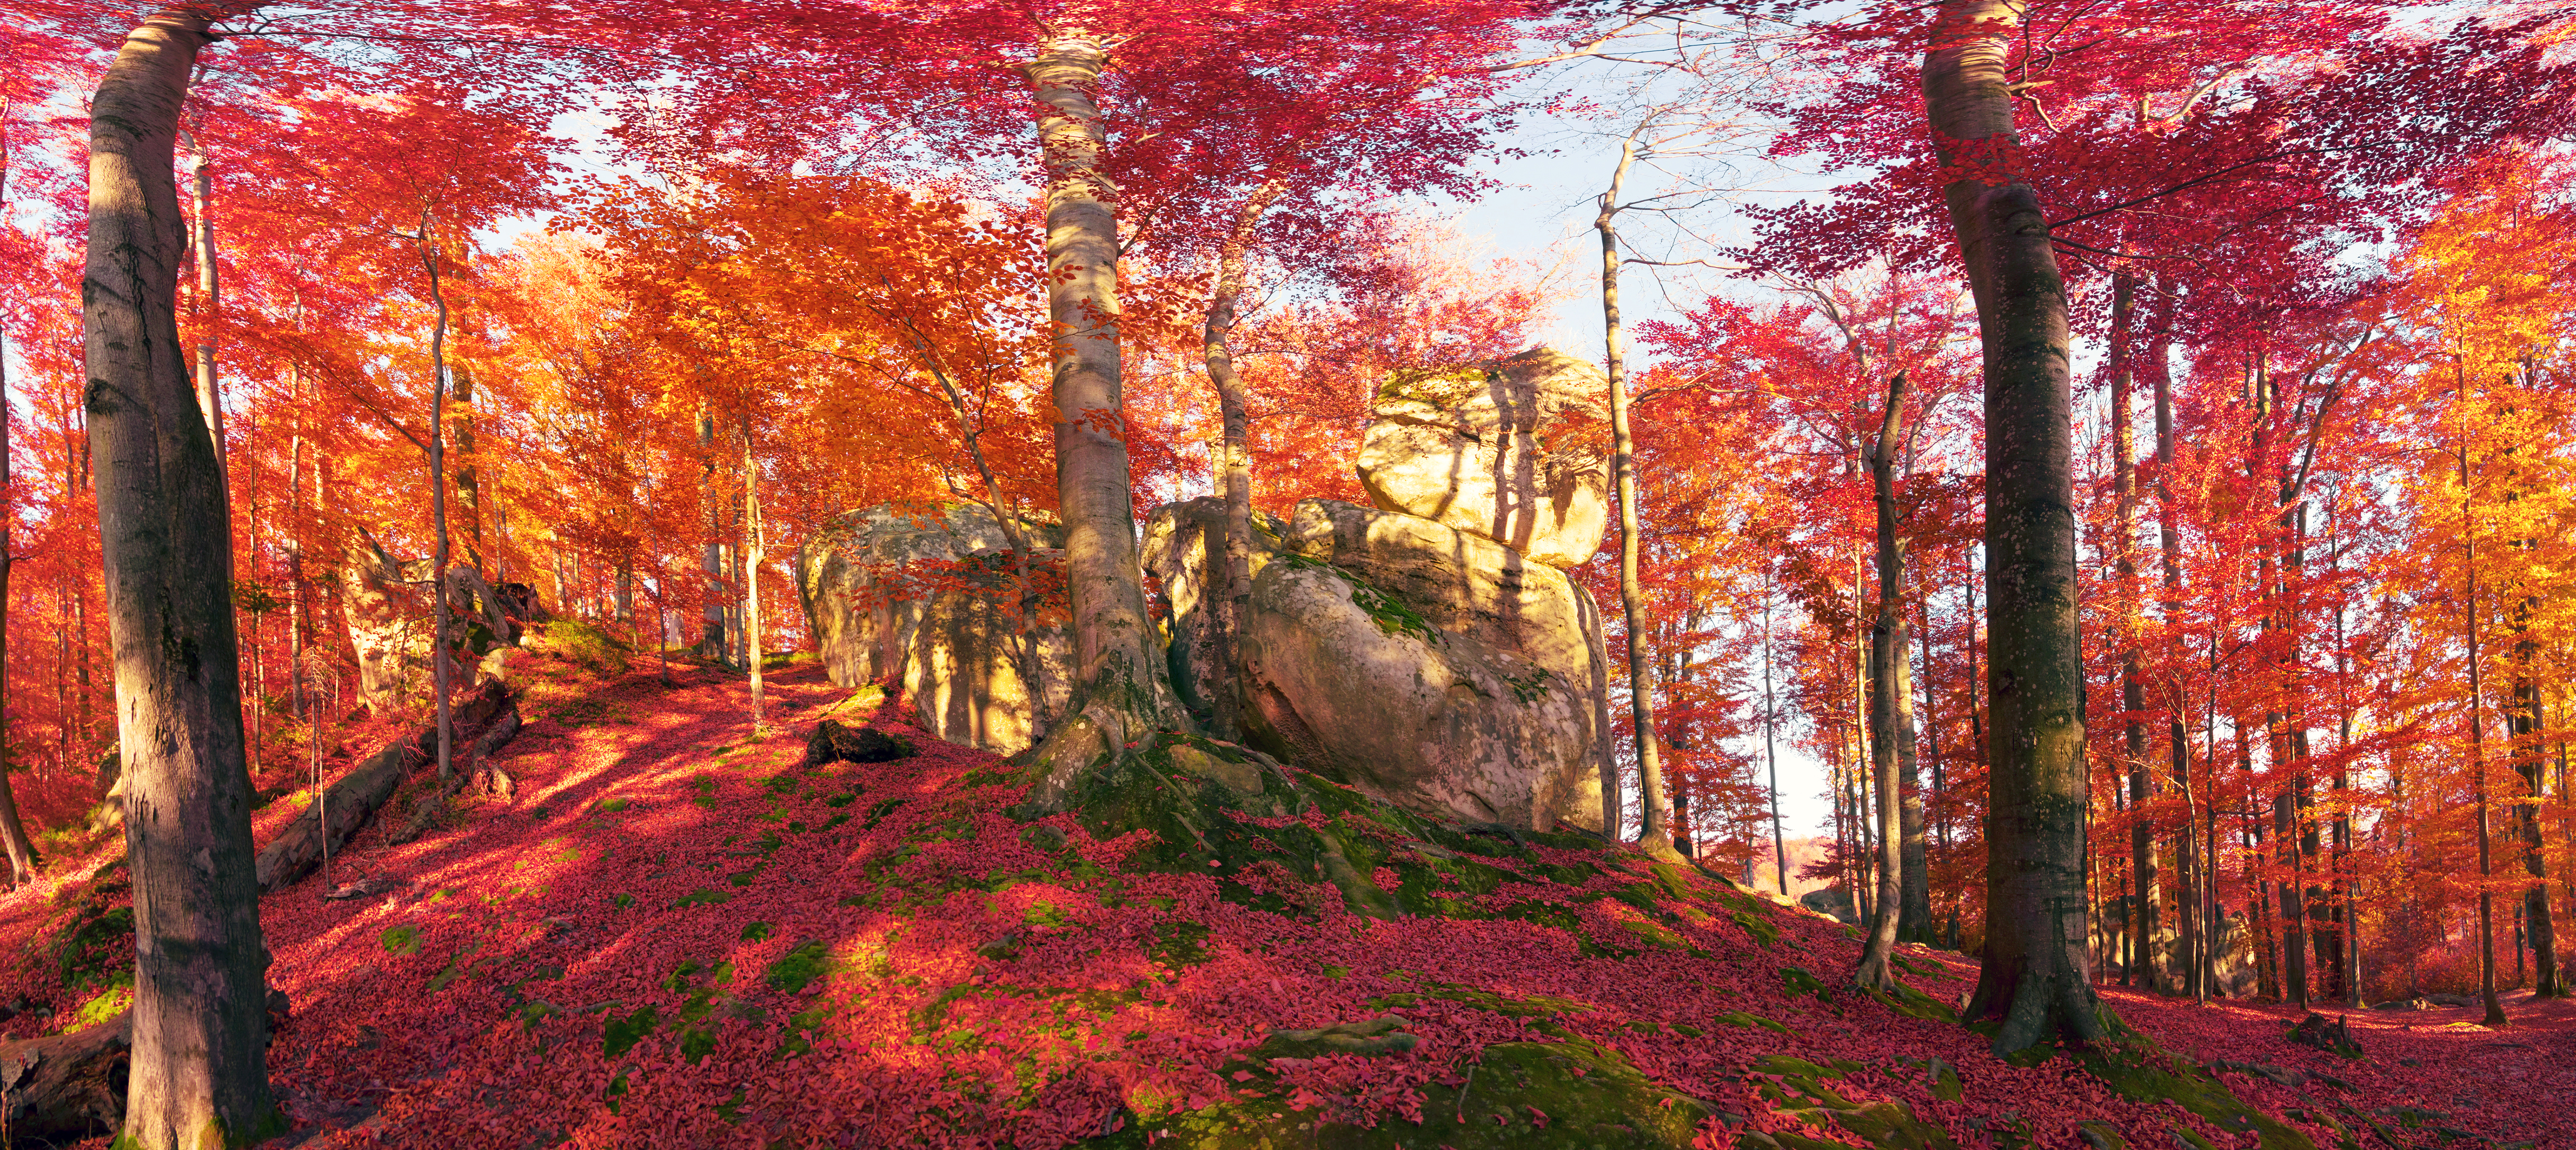 Red Autumn Forest 4k Ultra HD Wallpaper And Background Image